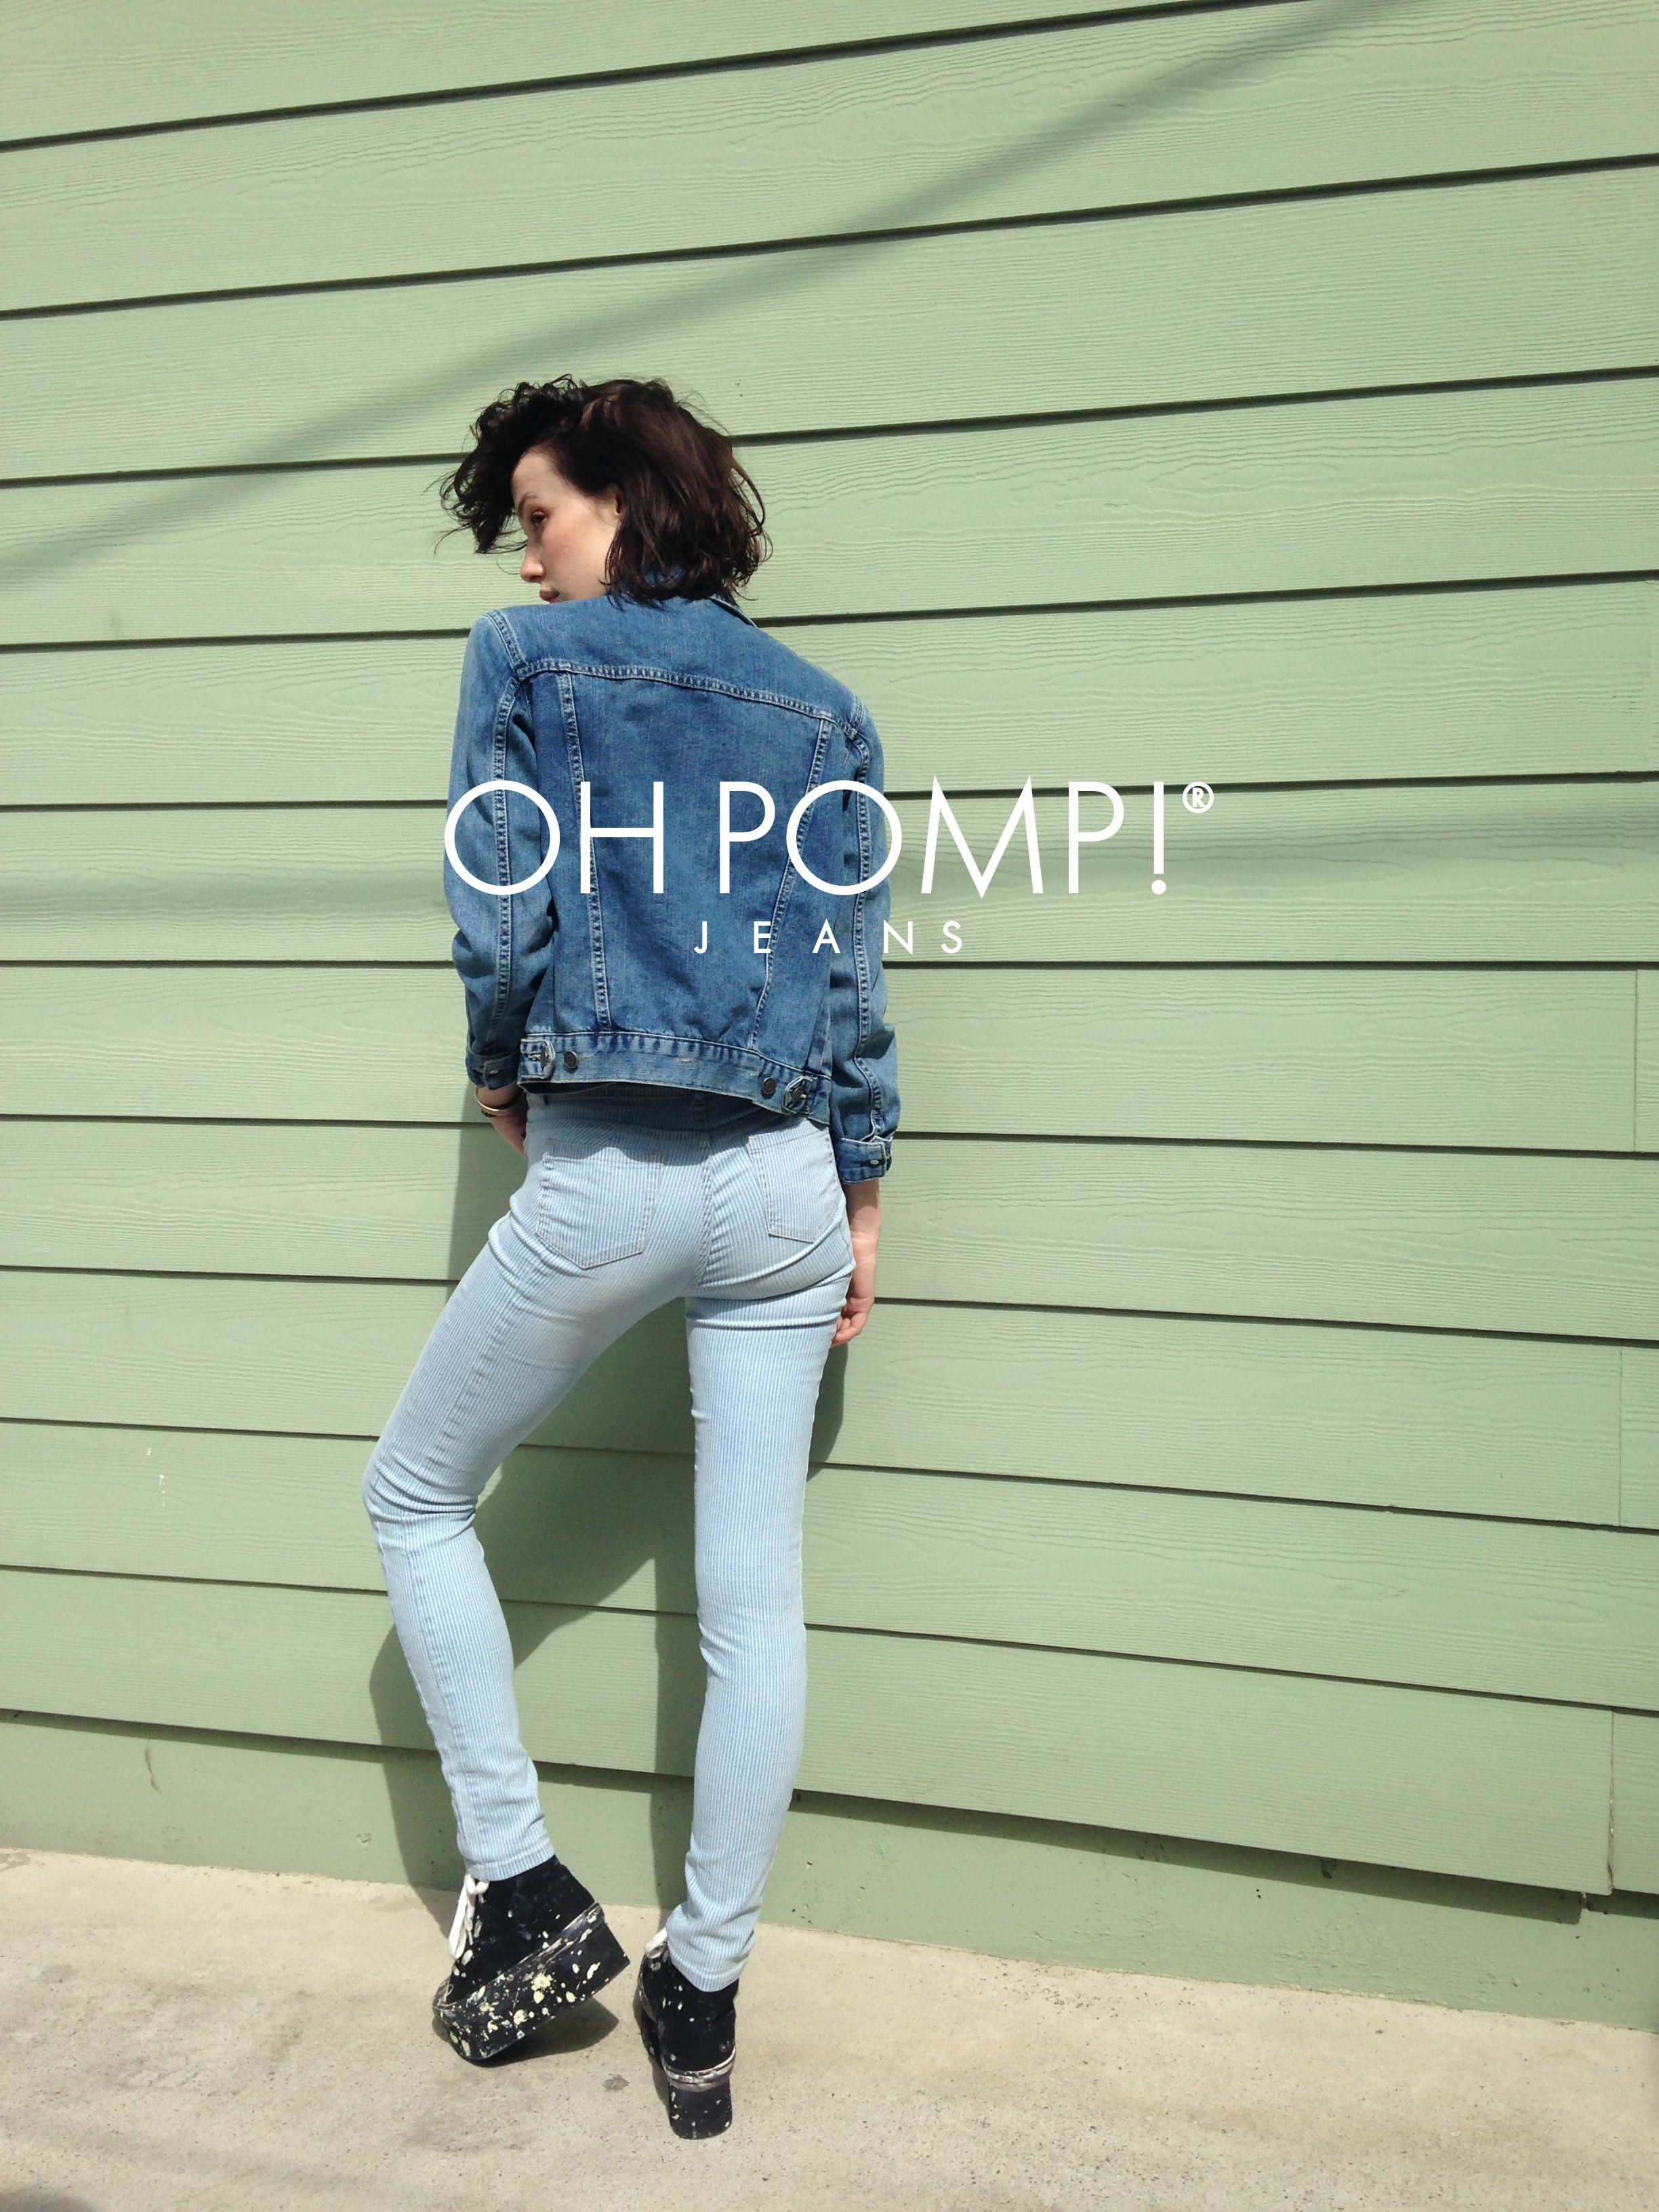 OH POMP!® Jeans Junior